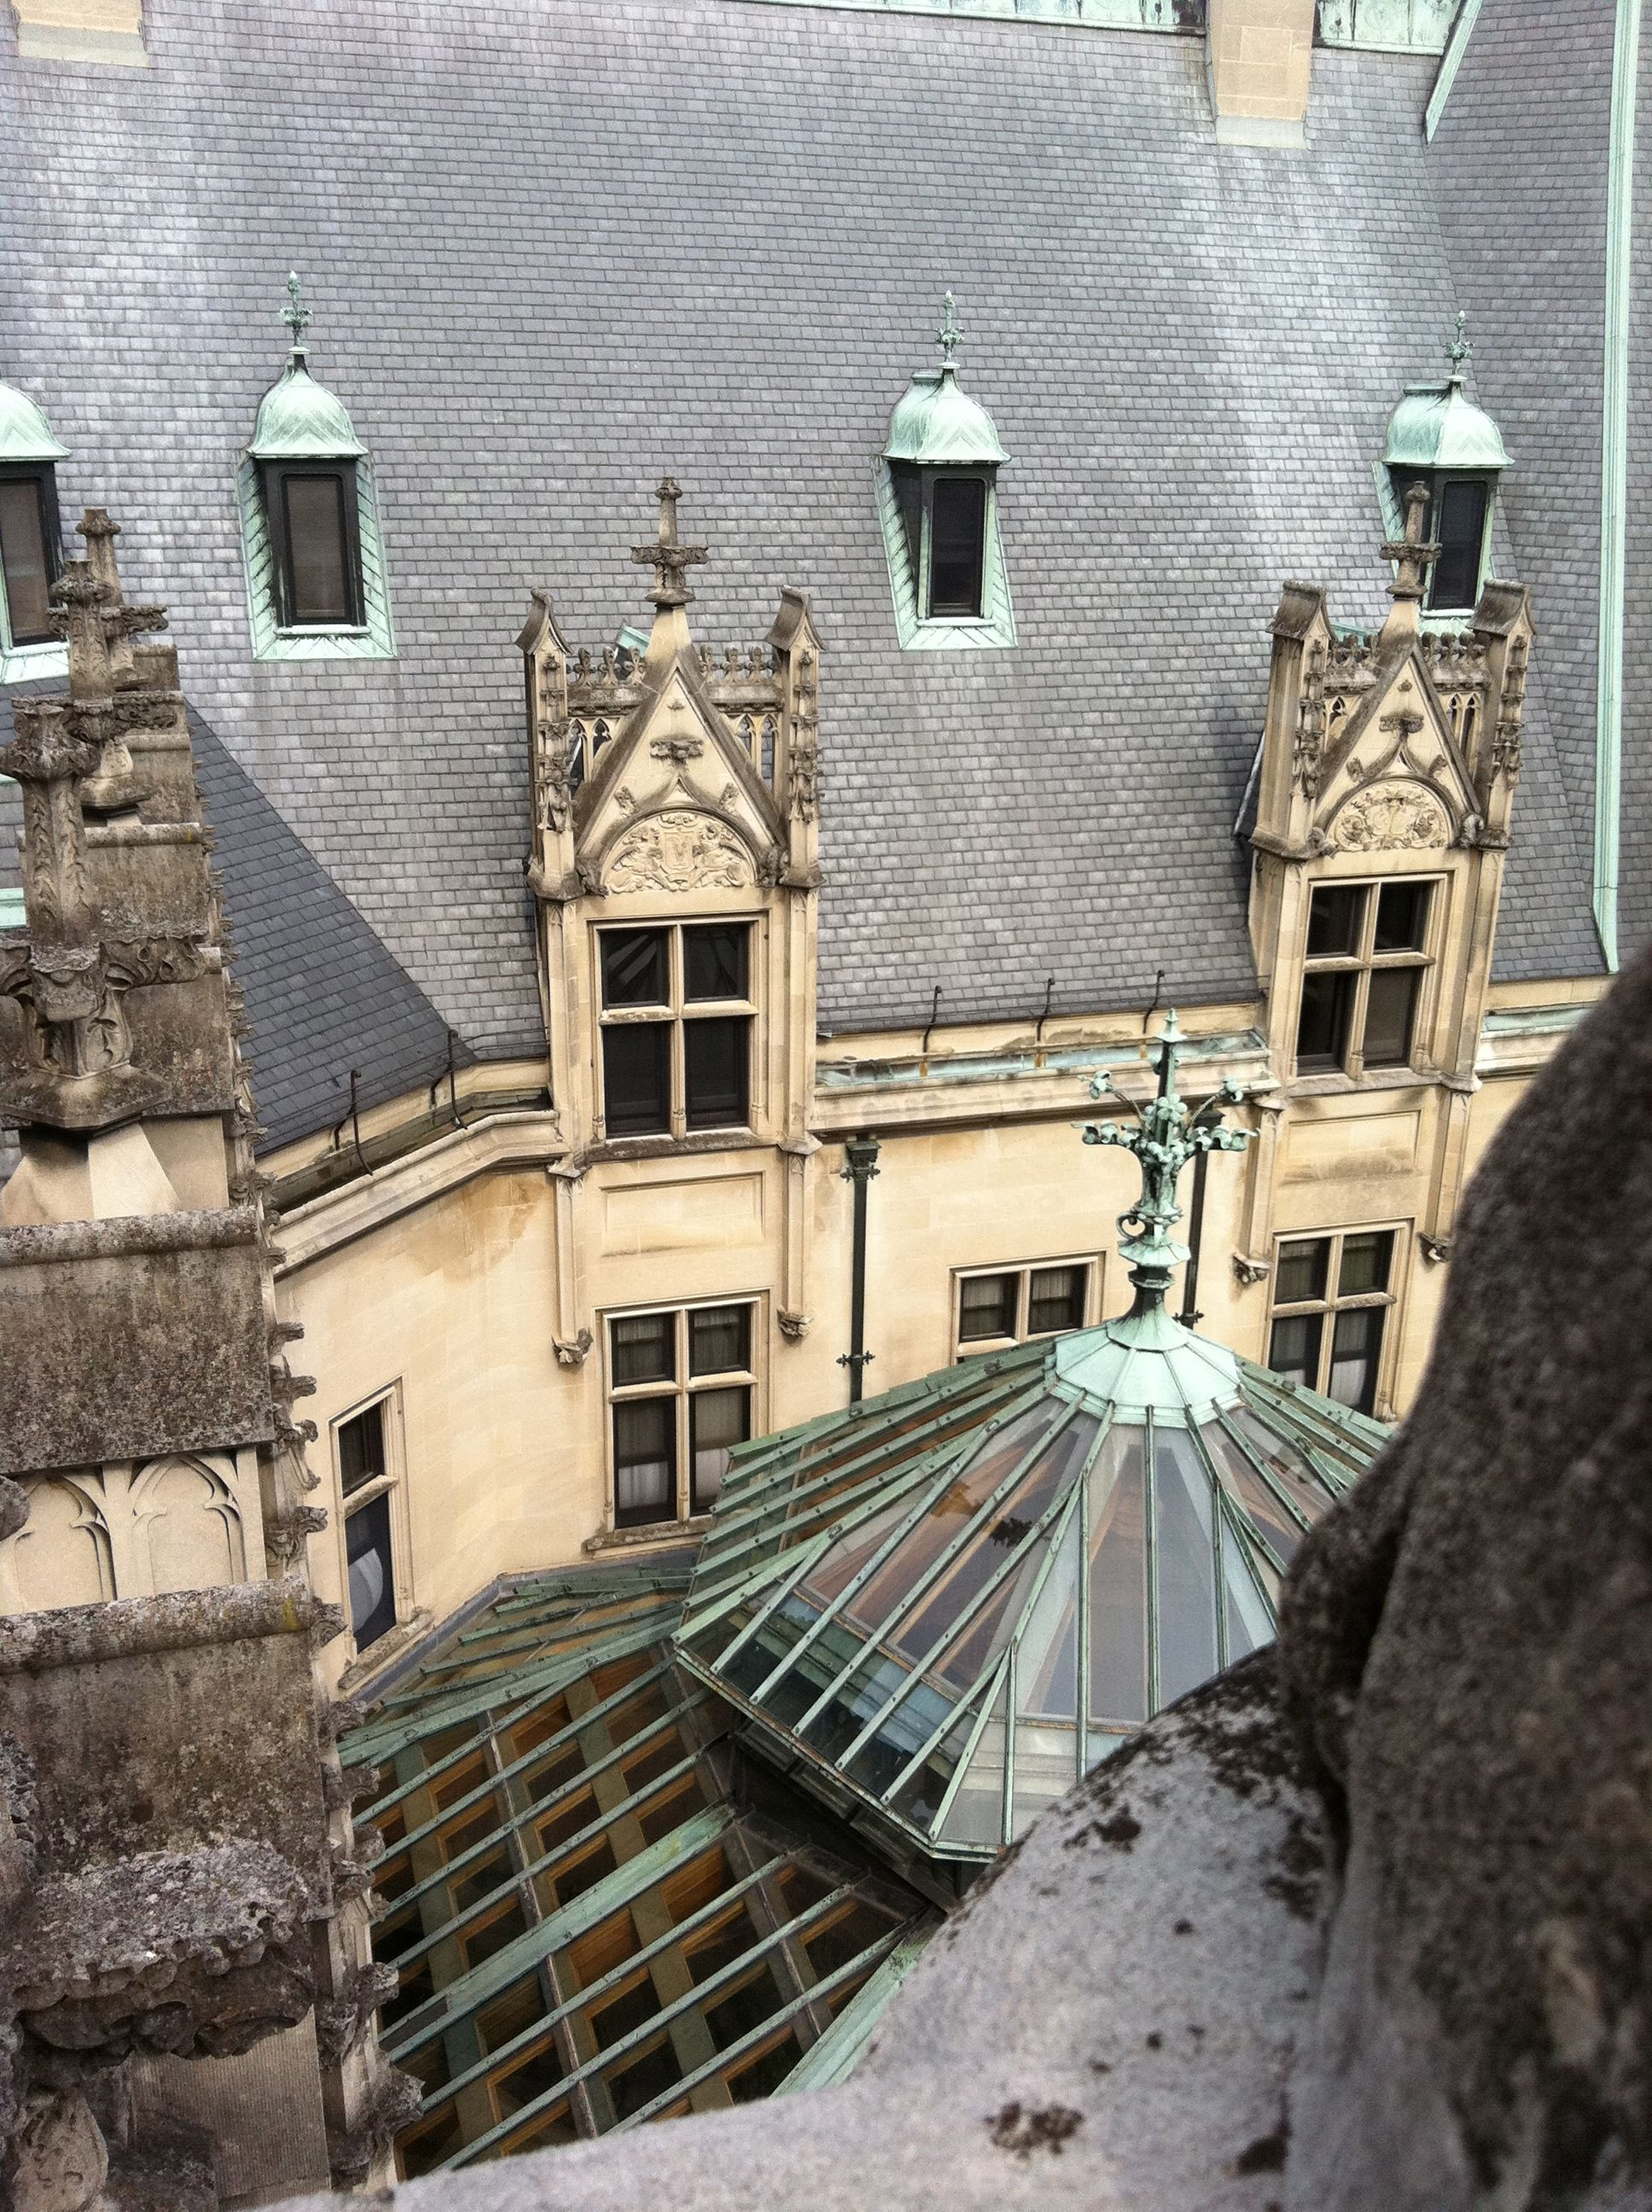 Rooftop Tour & Winery Biltmore Estate In Asheville